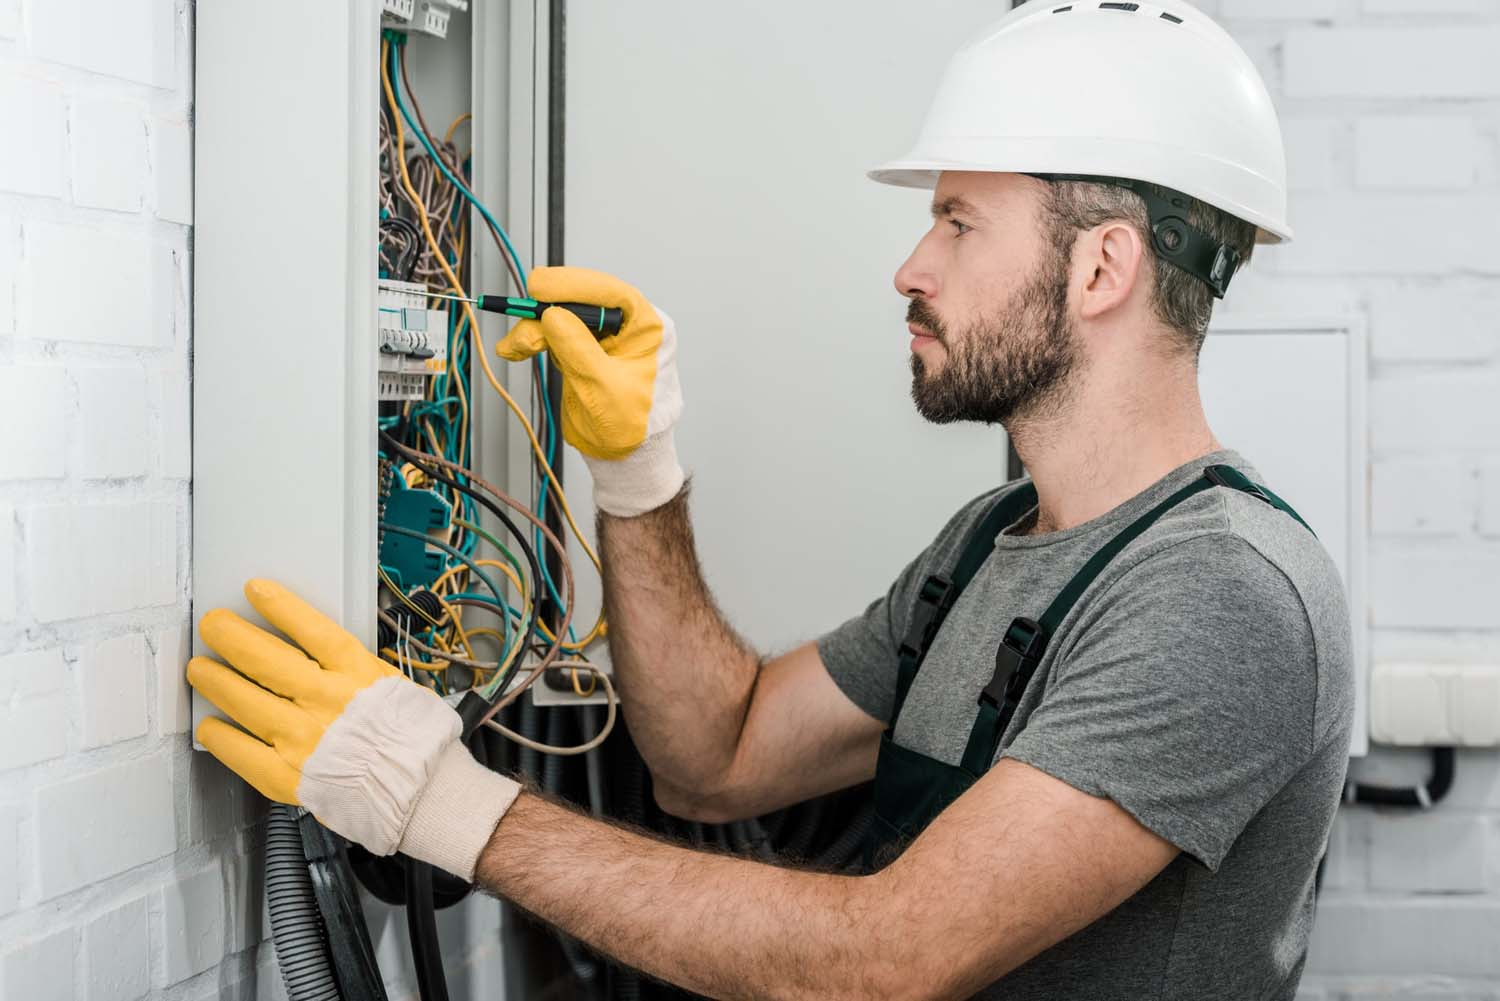 Pursuing Electrician Training Stress Free and Successfully